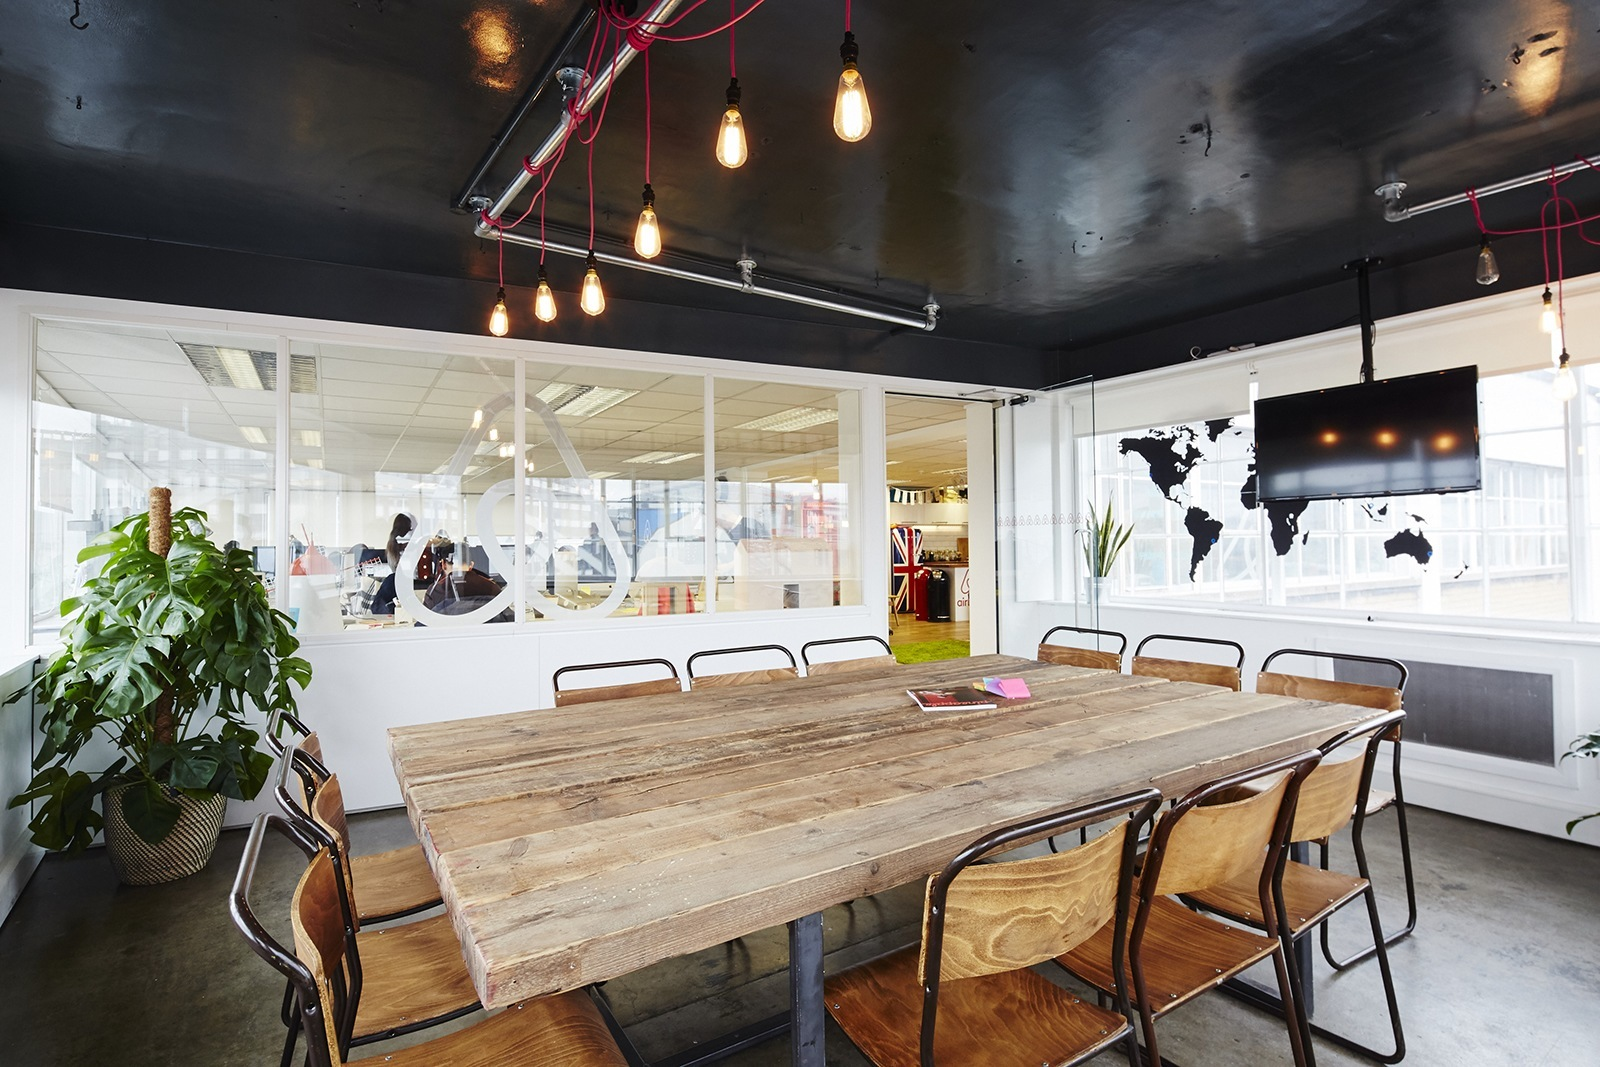 A look inside airbnb s new offices in london officelovin 39 for Bureau travail